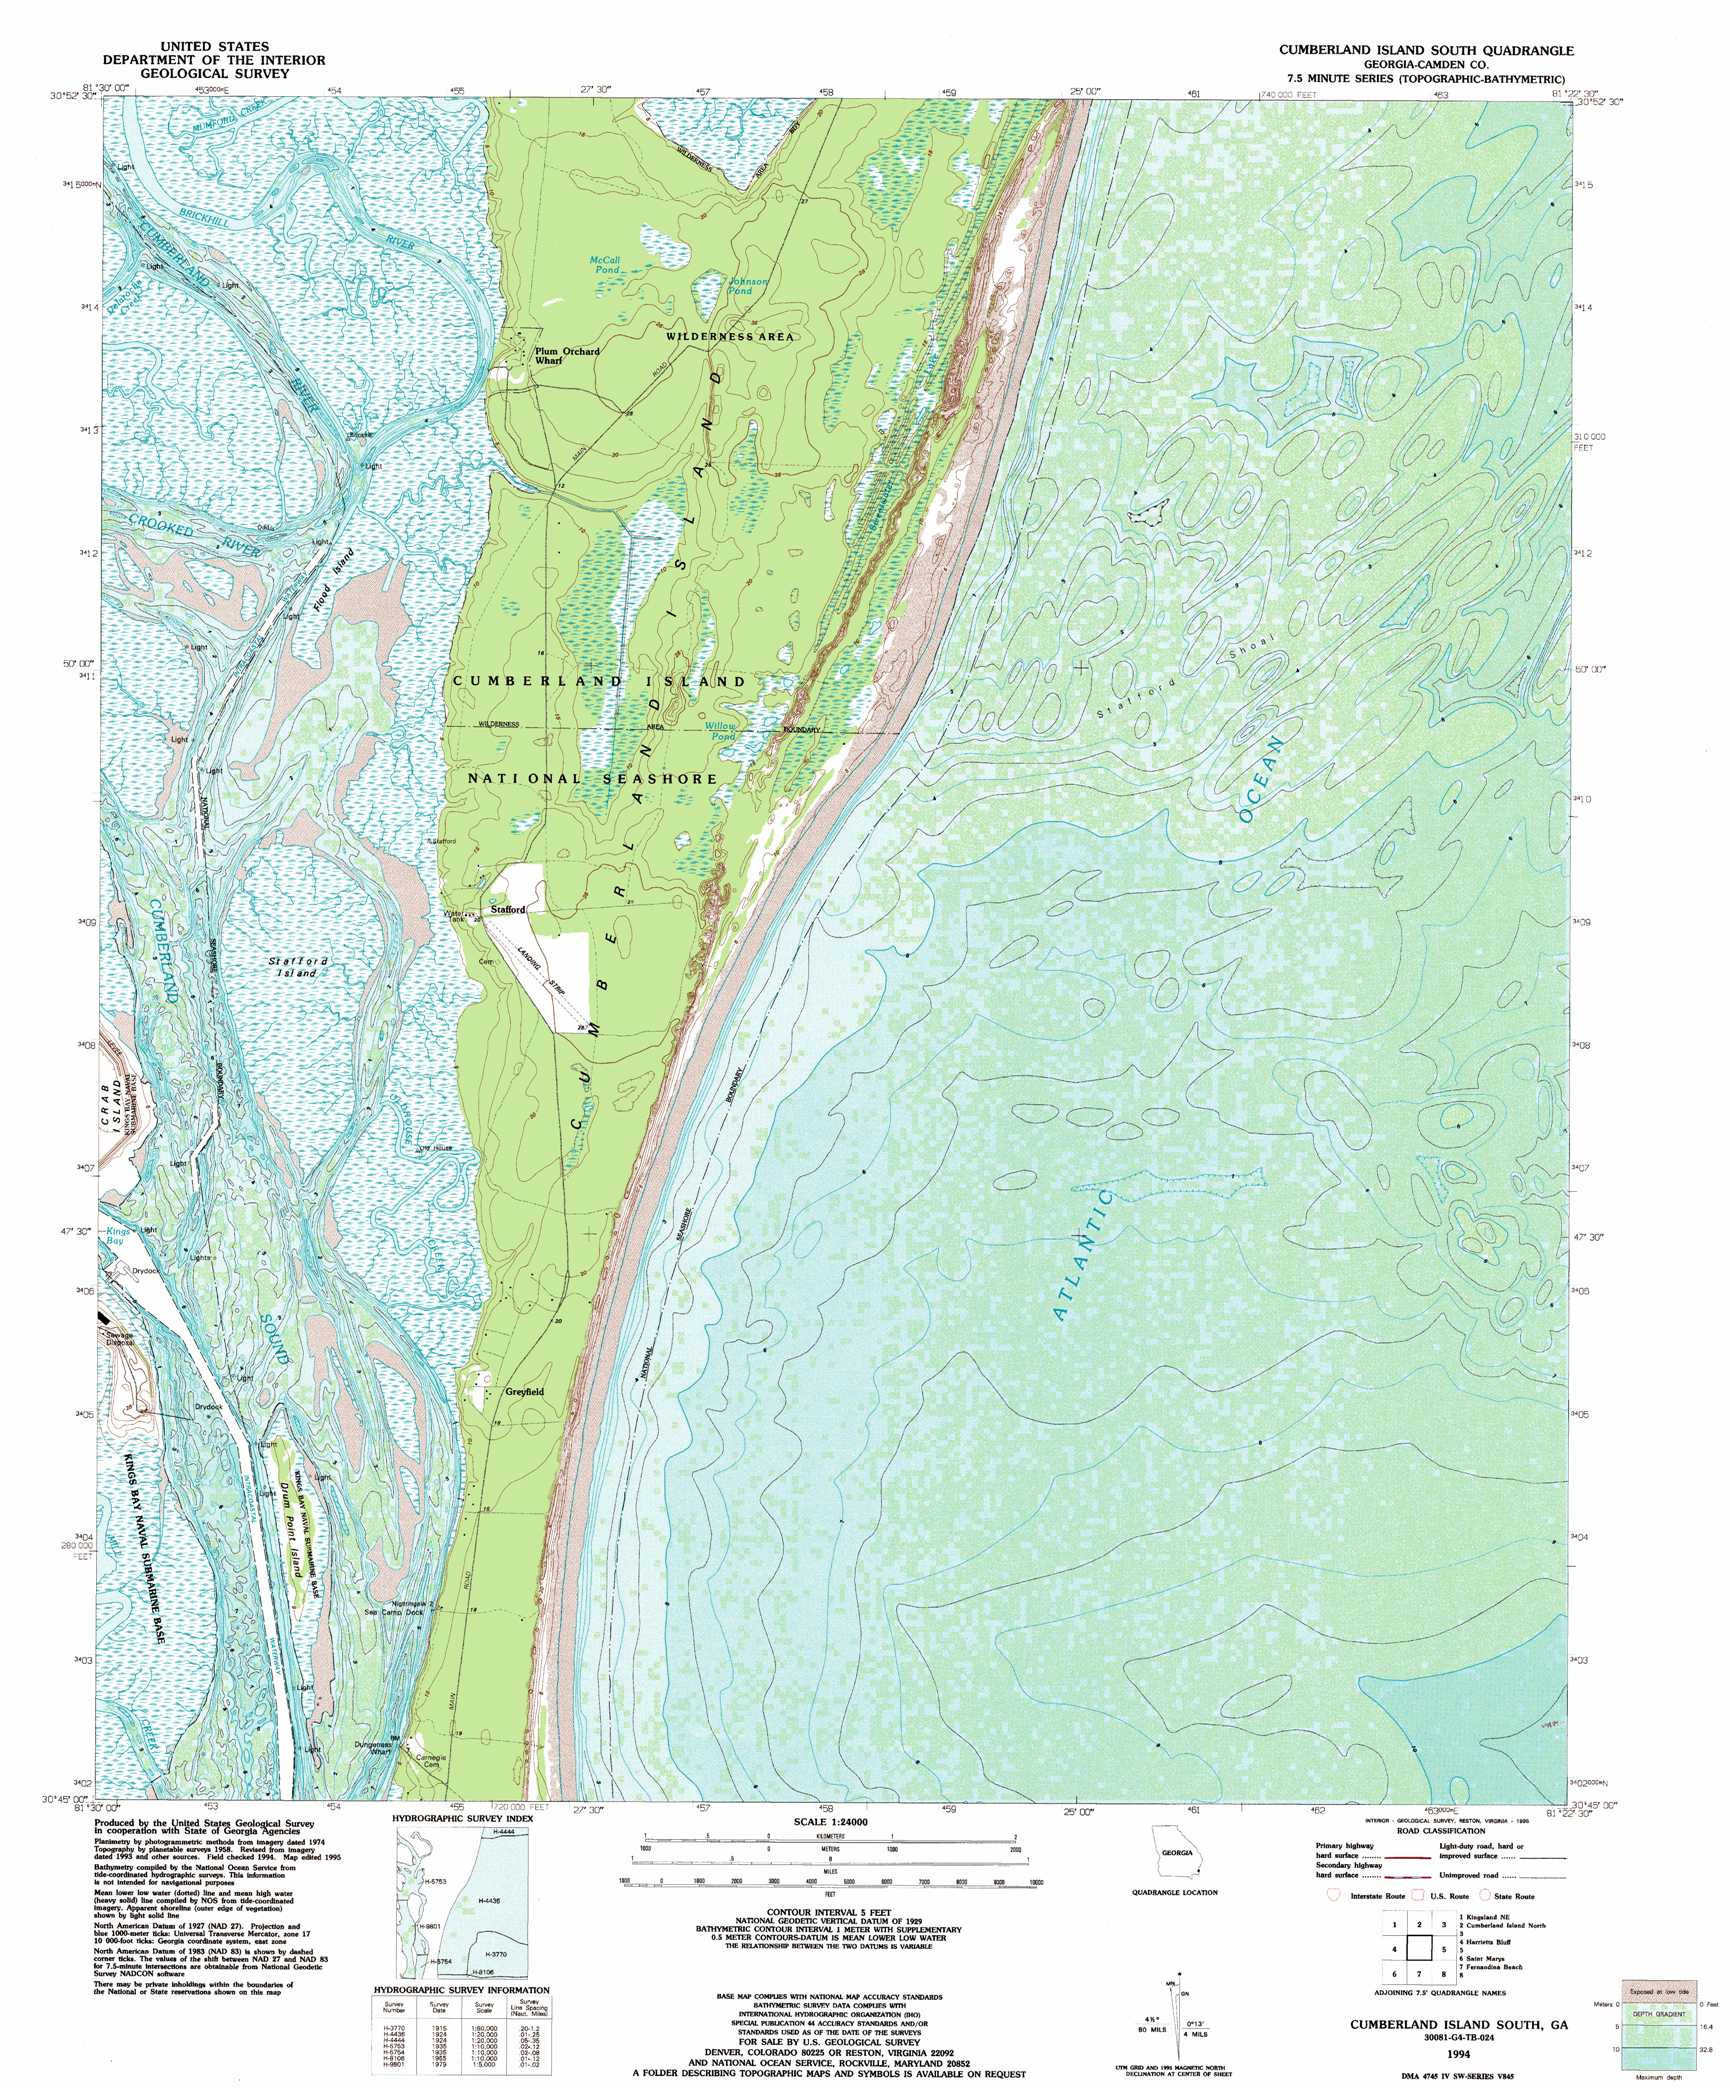 Cumberland Island South Topographic Map GA USGS Topo Quad G - Topographical map of georgia